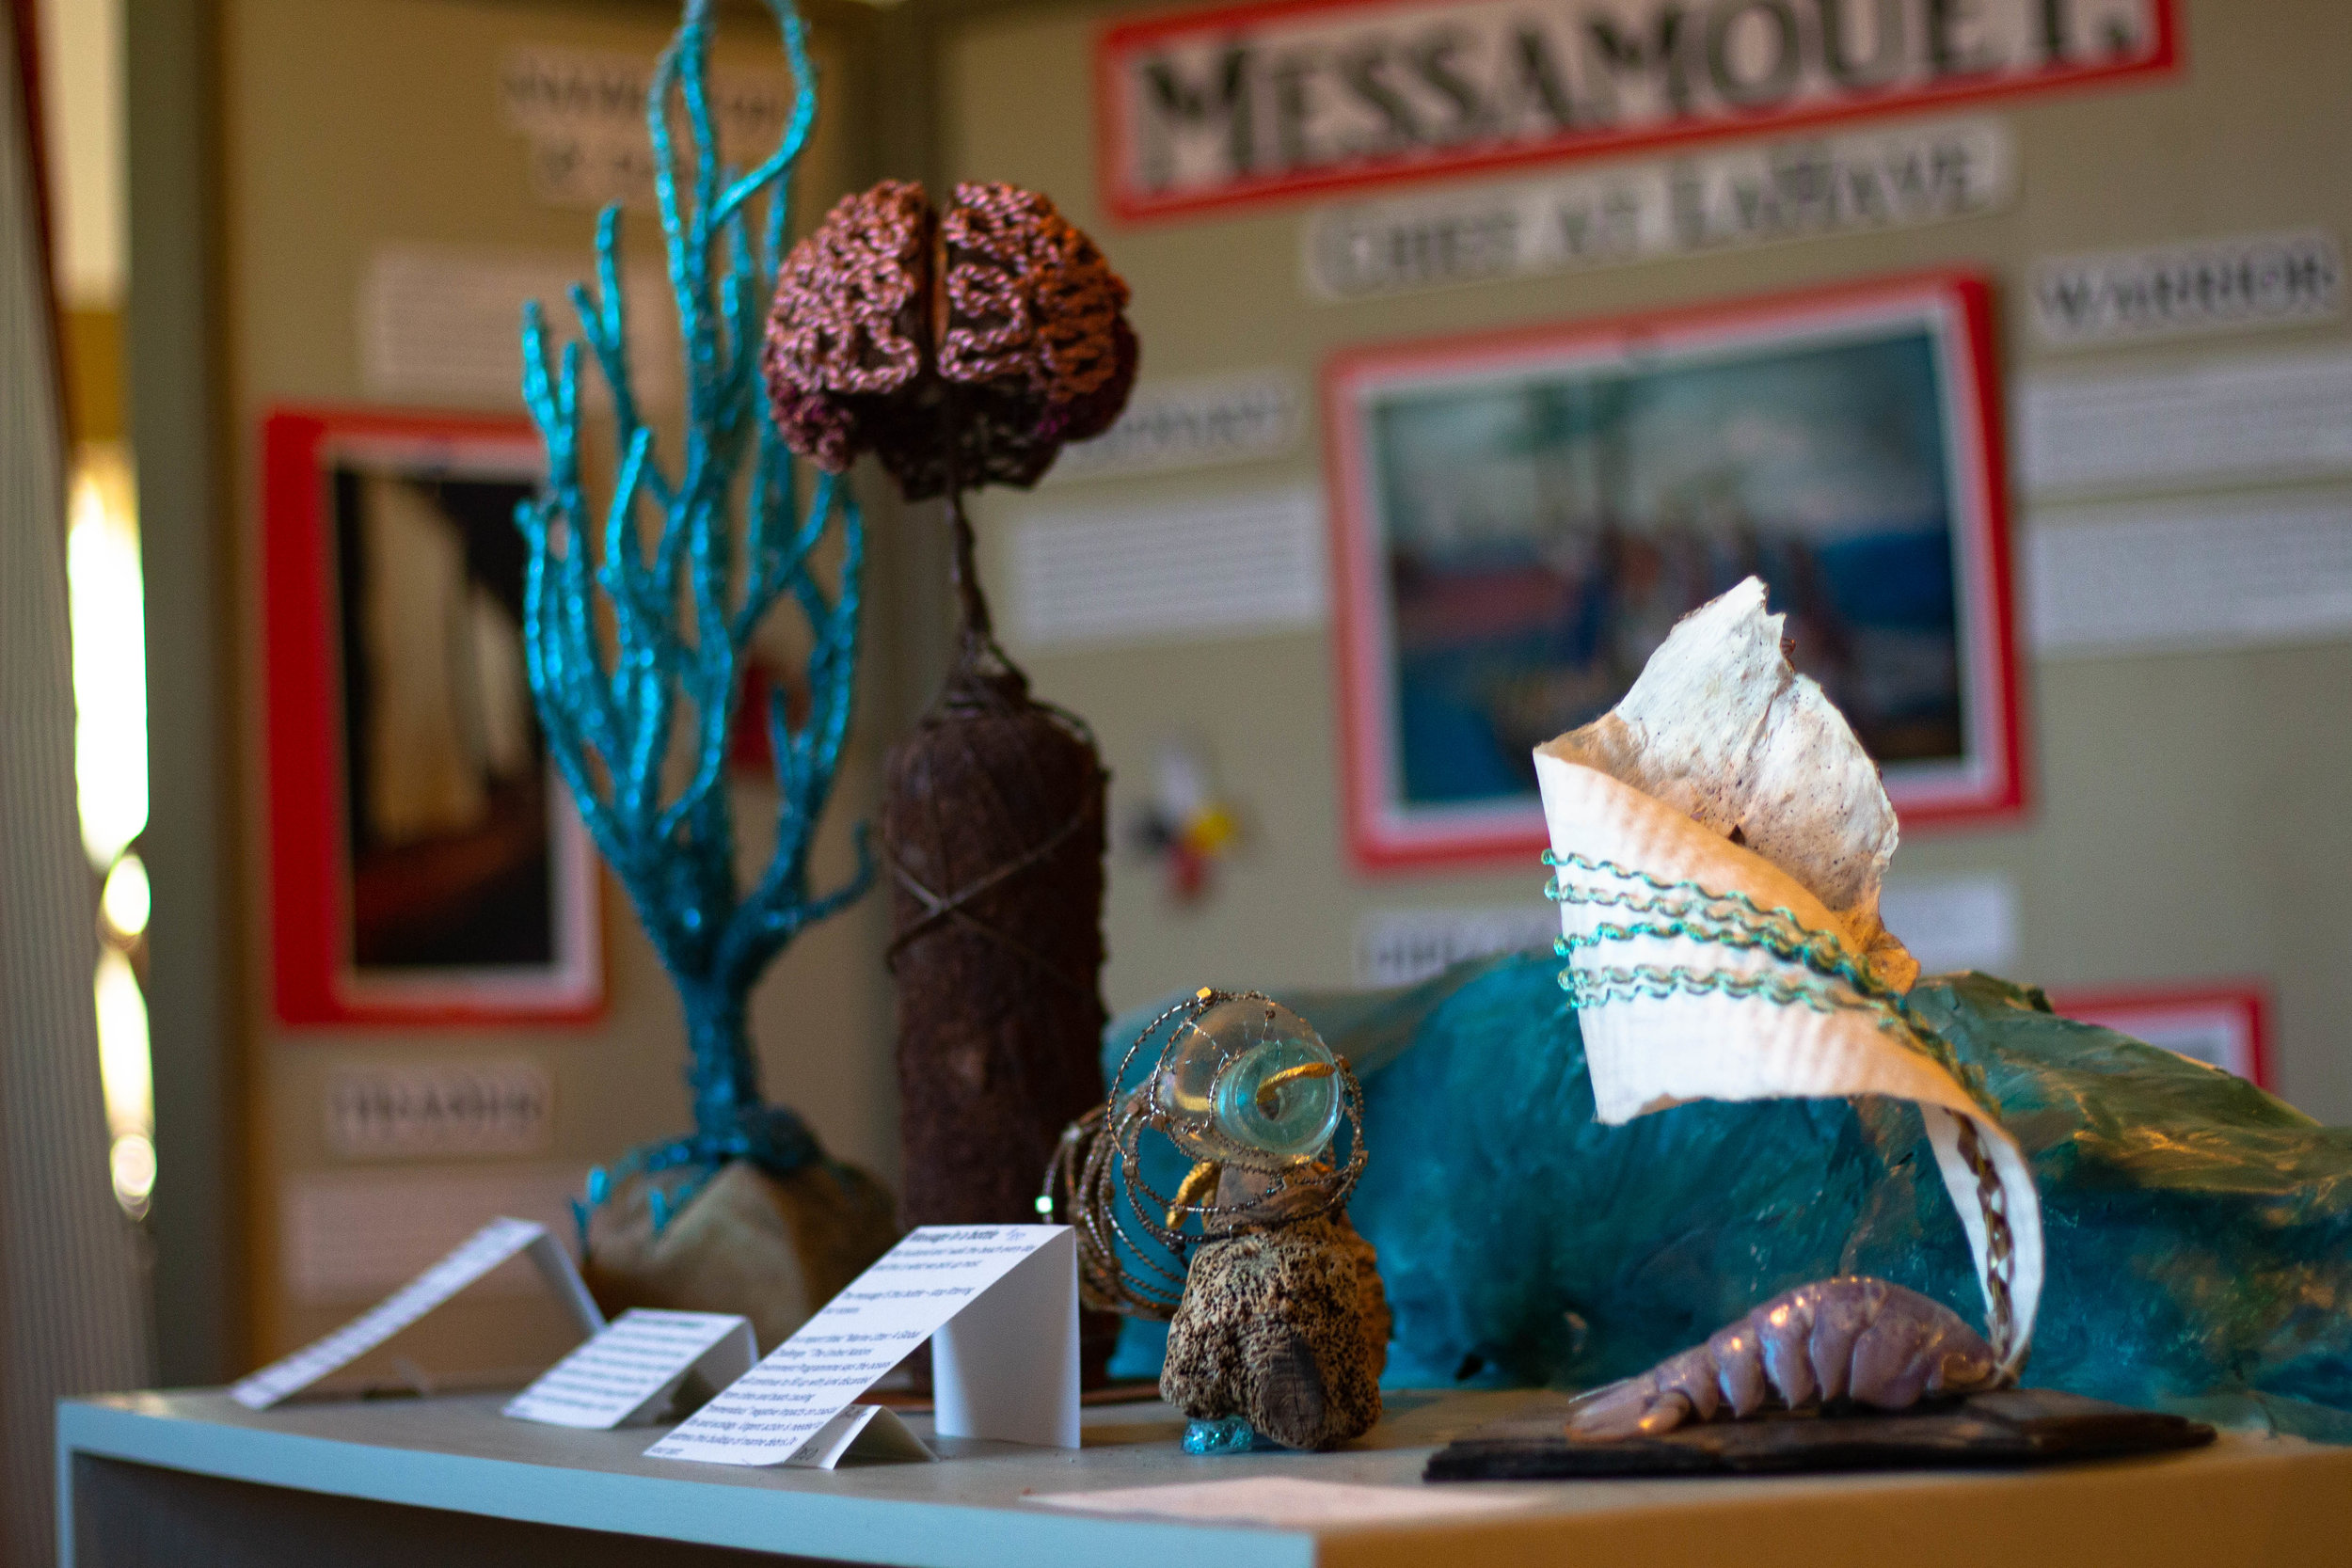 The museum strives to celebrate a wide range of of LaHave heritage. Special summer exhibits often showcase local artisans and their unique maritime influenced art.